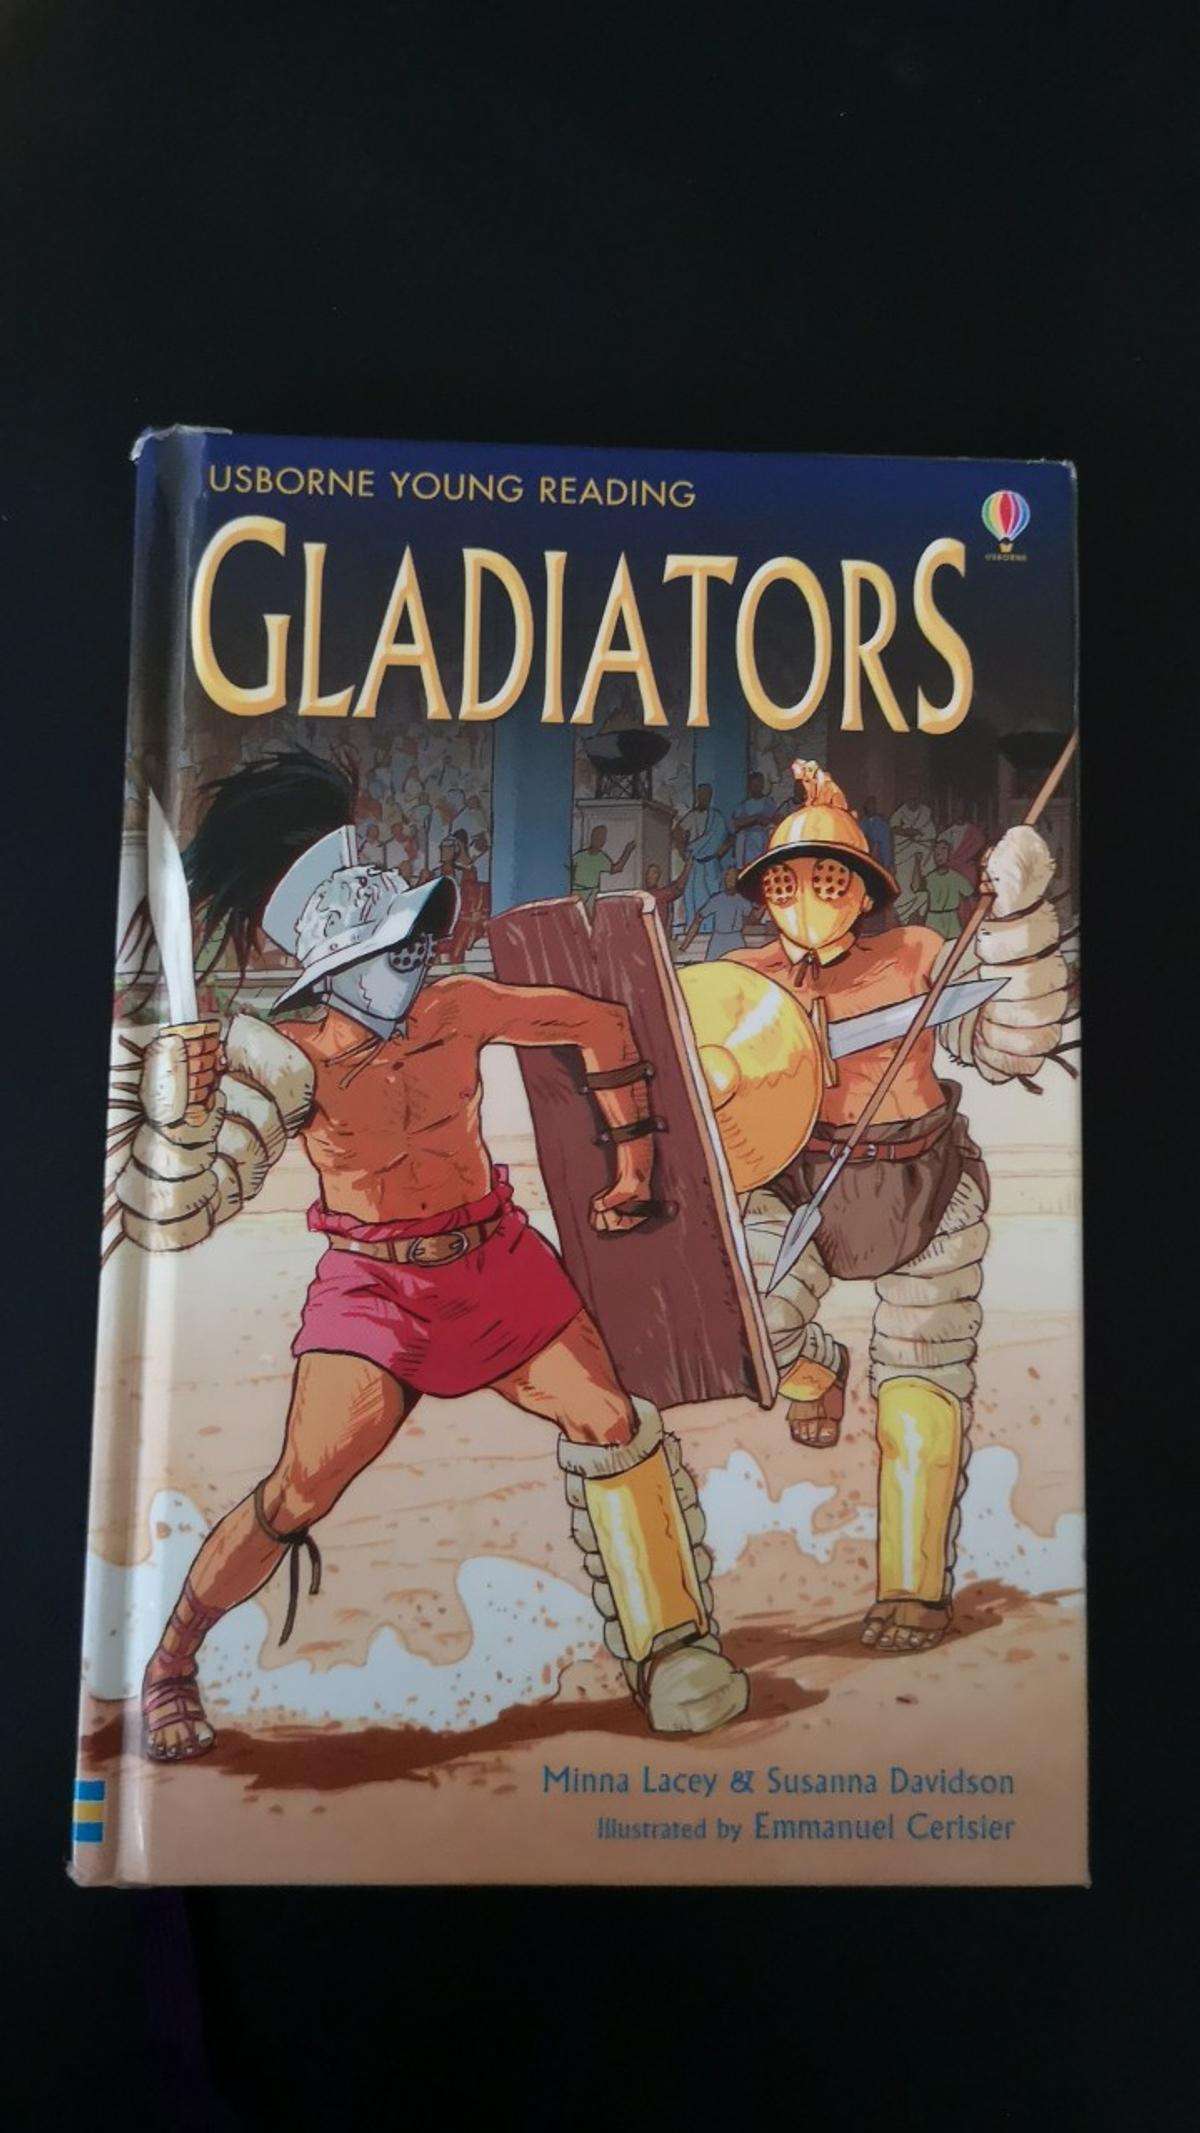 A well illustrated book about gladiators!